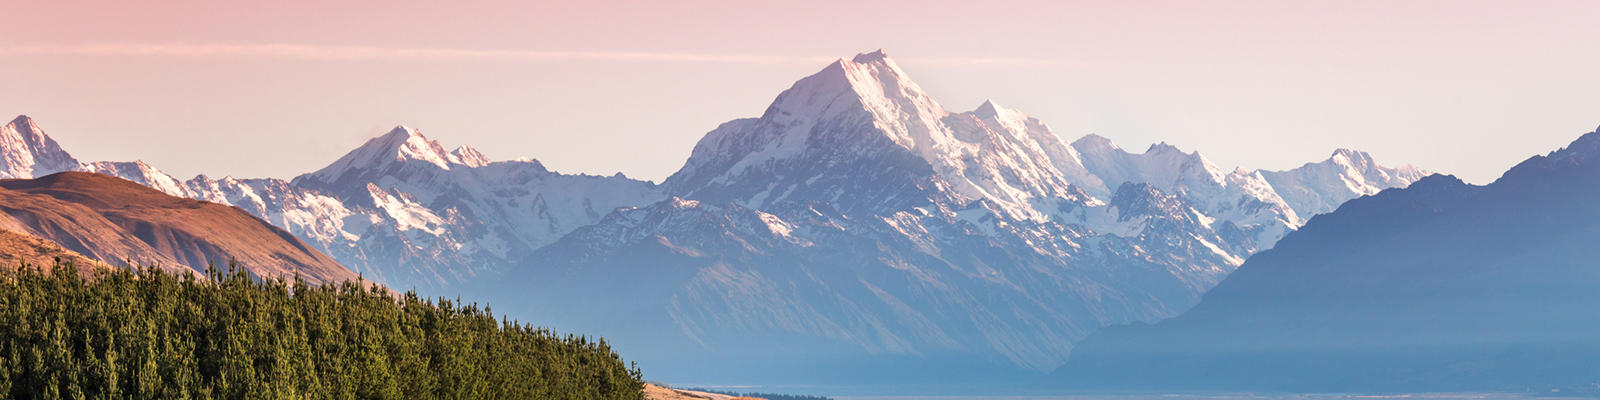 9 things to do new zealand that aren't skiing - mt cook